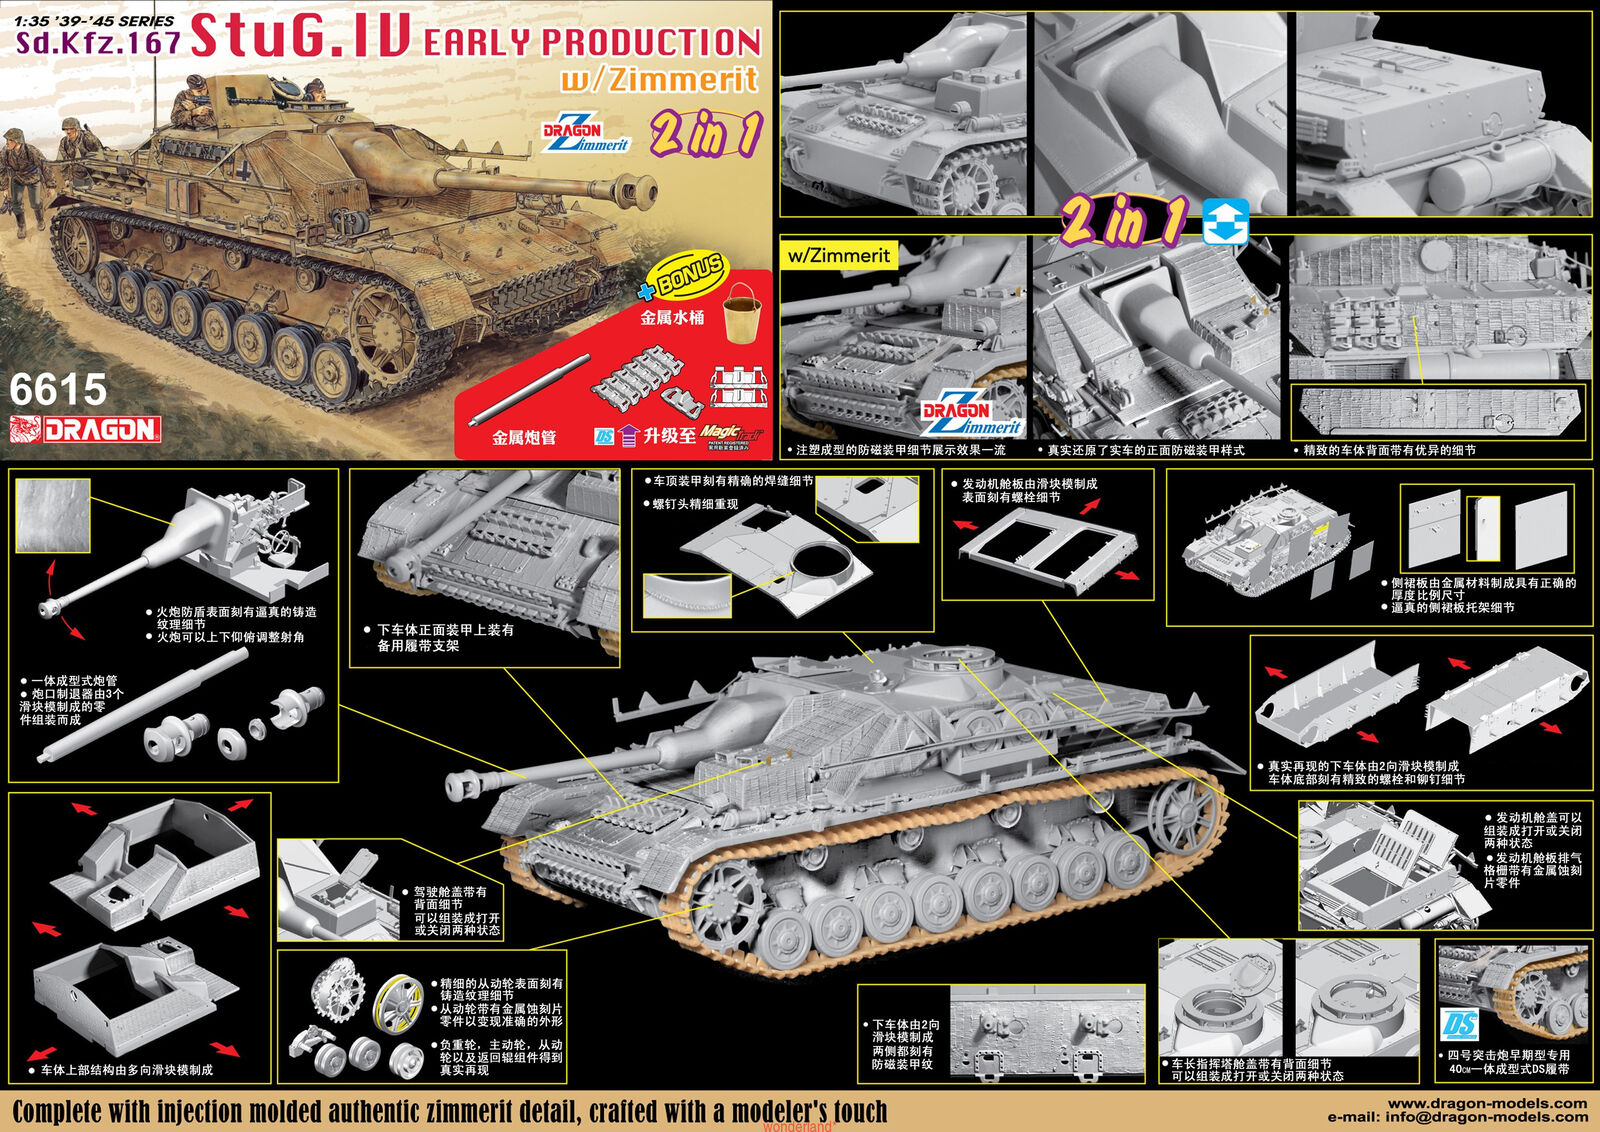 DRAGON 1 35 6615 '39-'45 Series Sd.Kfz.167 StuG.IU Early Production w Zimmerit